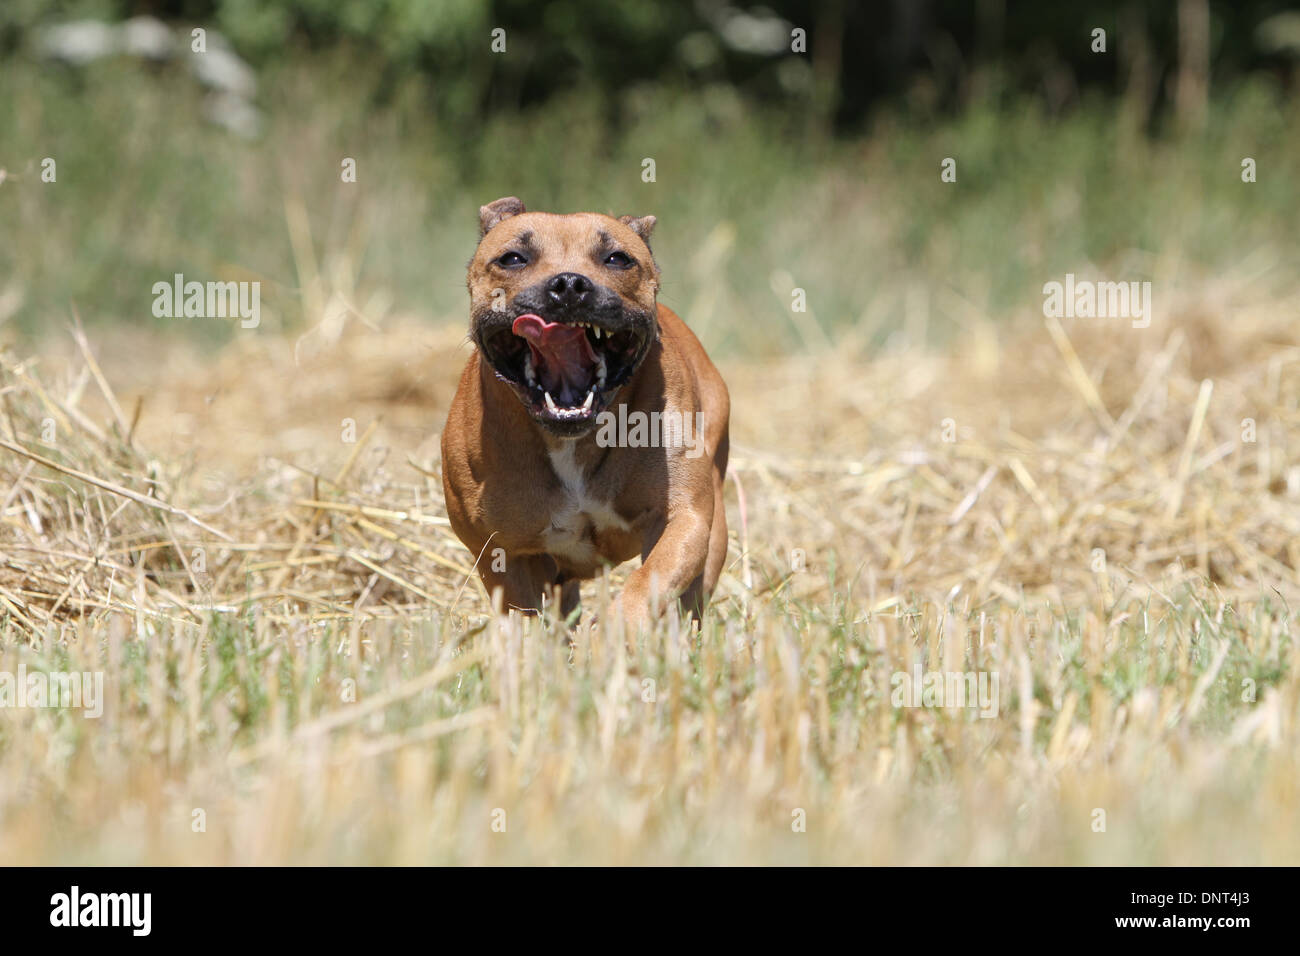 dog Staffordshire Bull Terrier / Staffie   adult running in a field - Stock Image